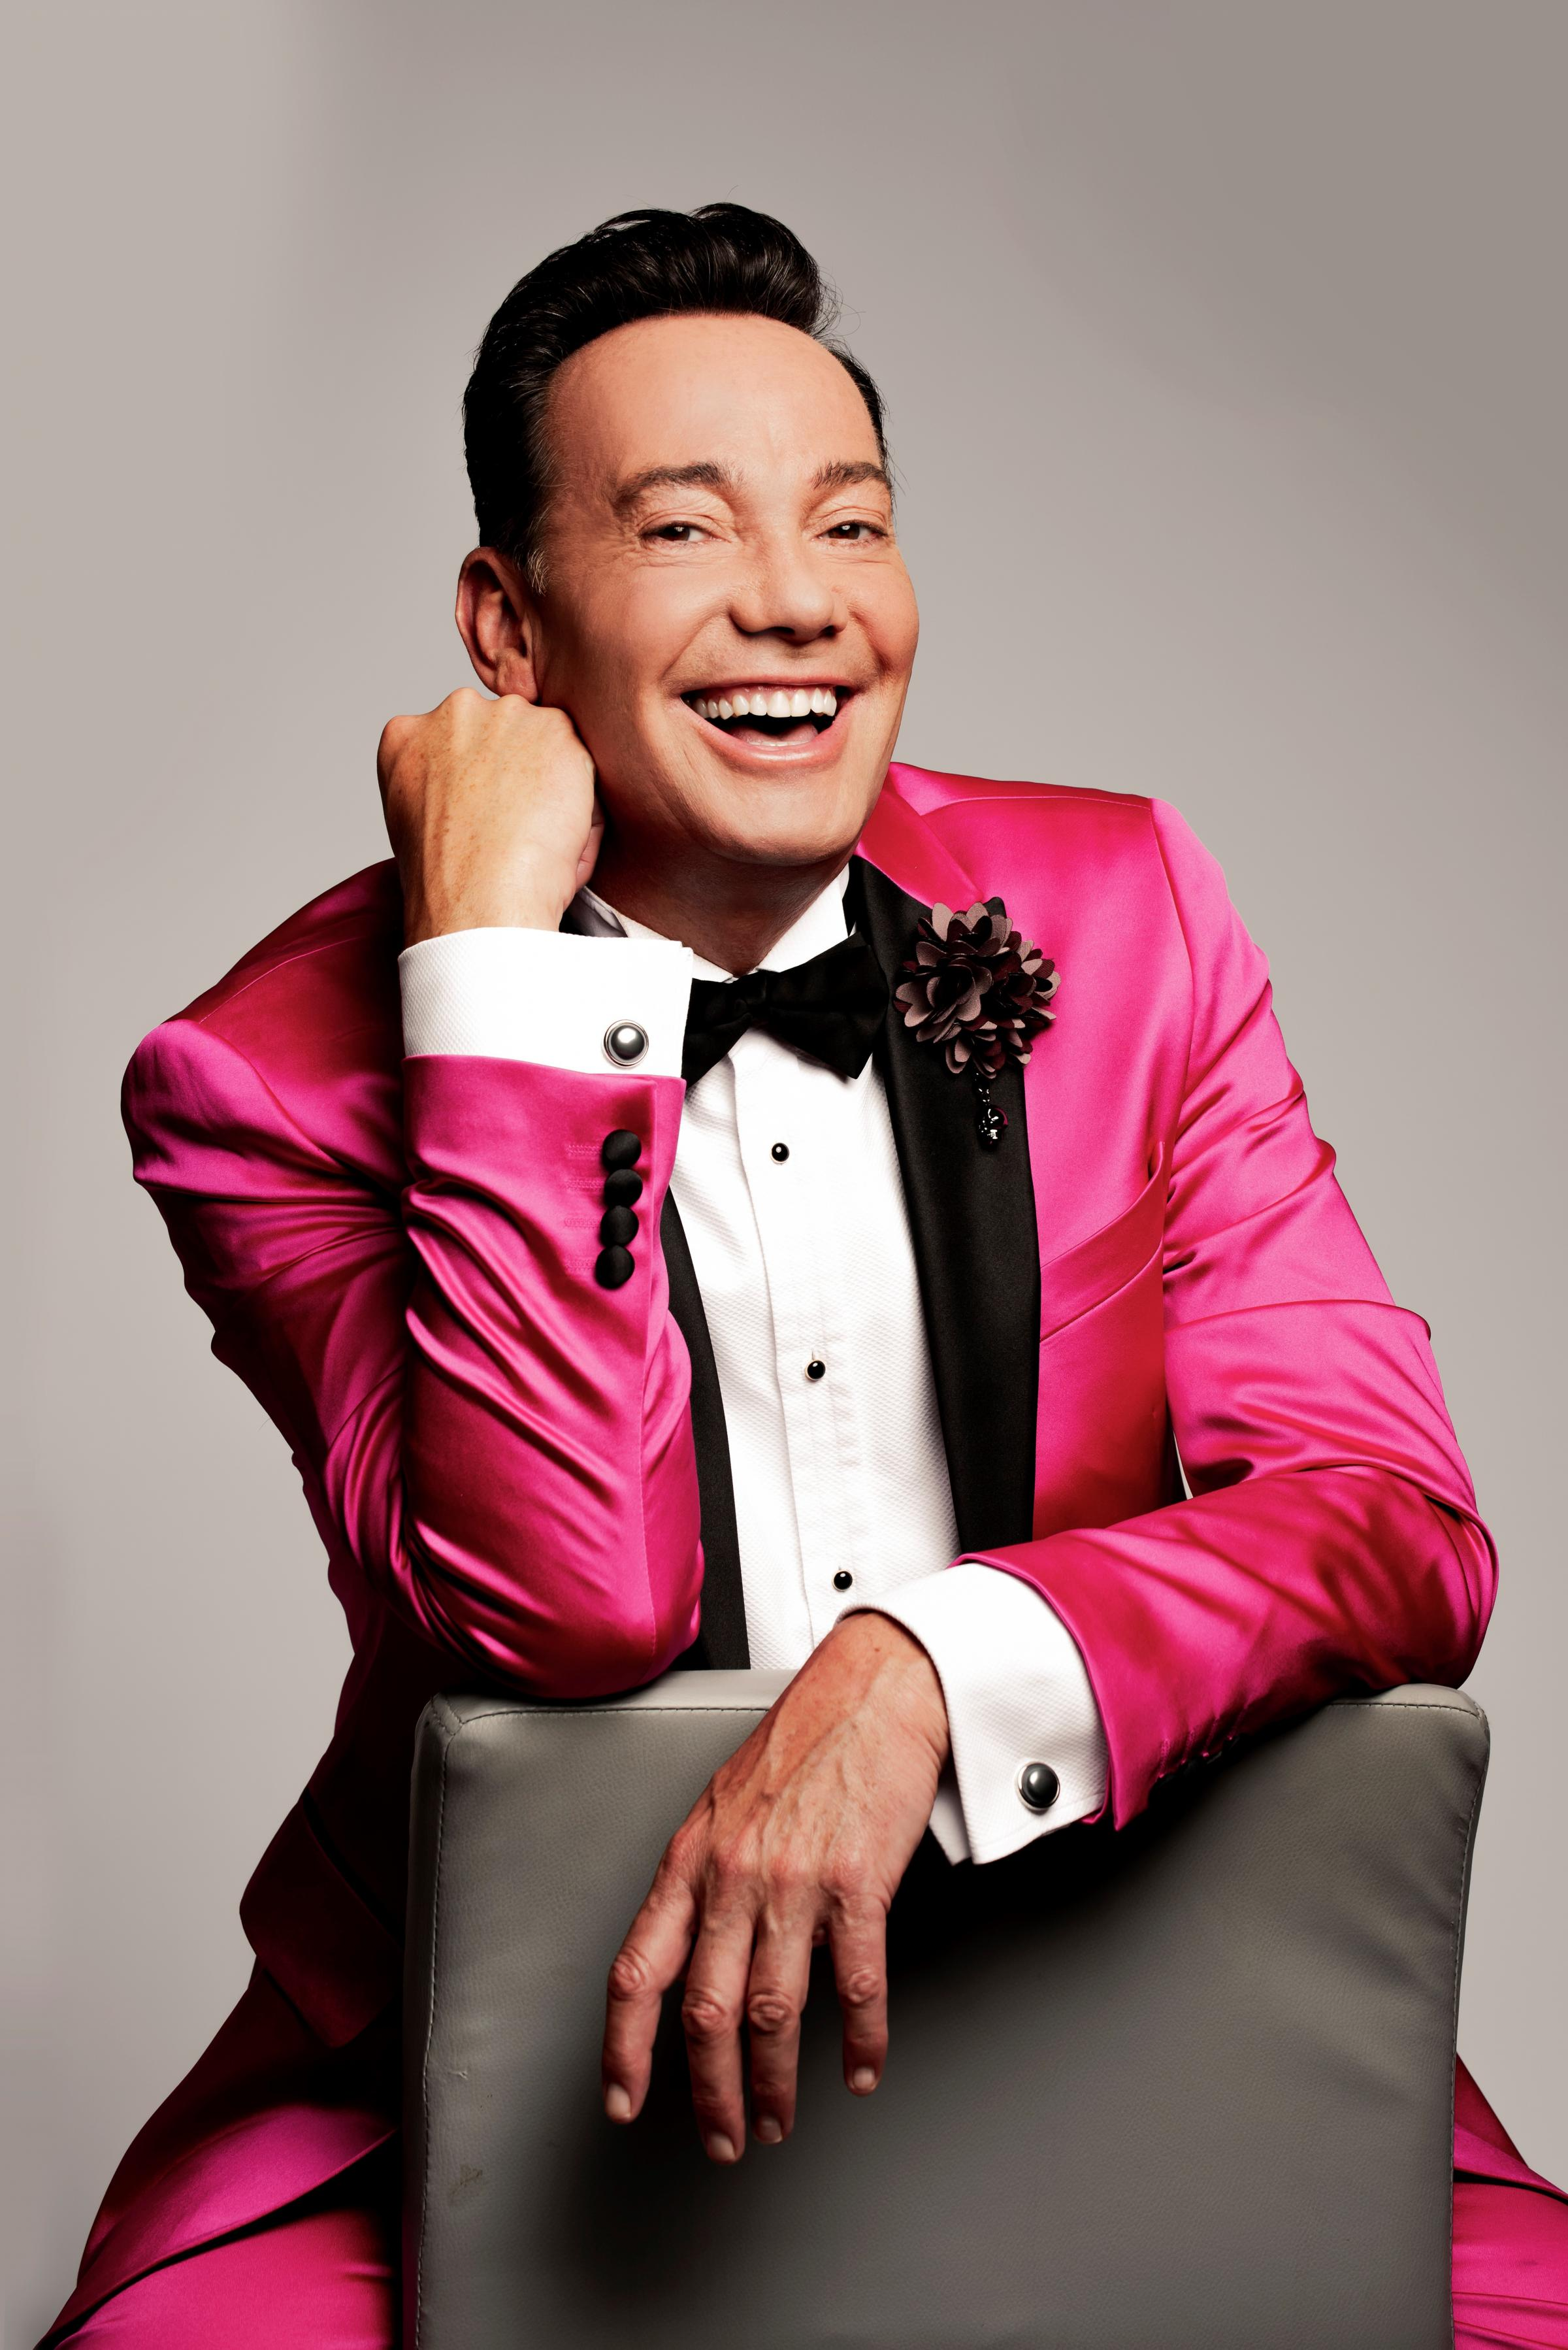 Craig Revel Horwood promises 'a wealth of backstage gossip' about Strictly on his debut tour